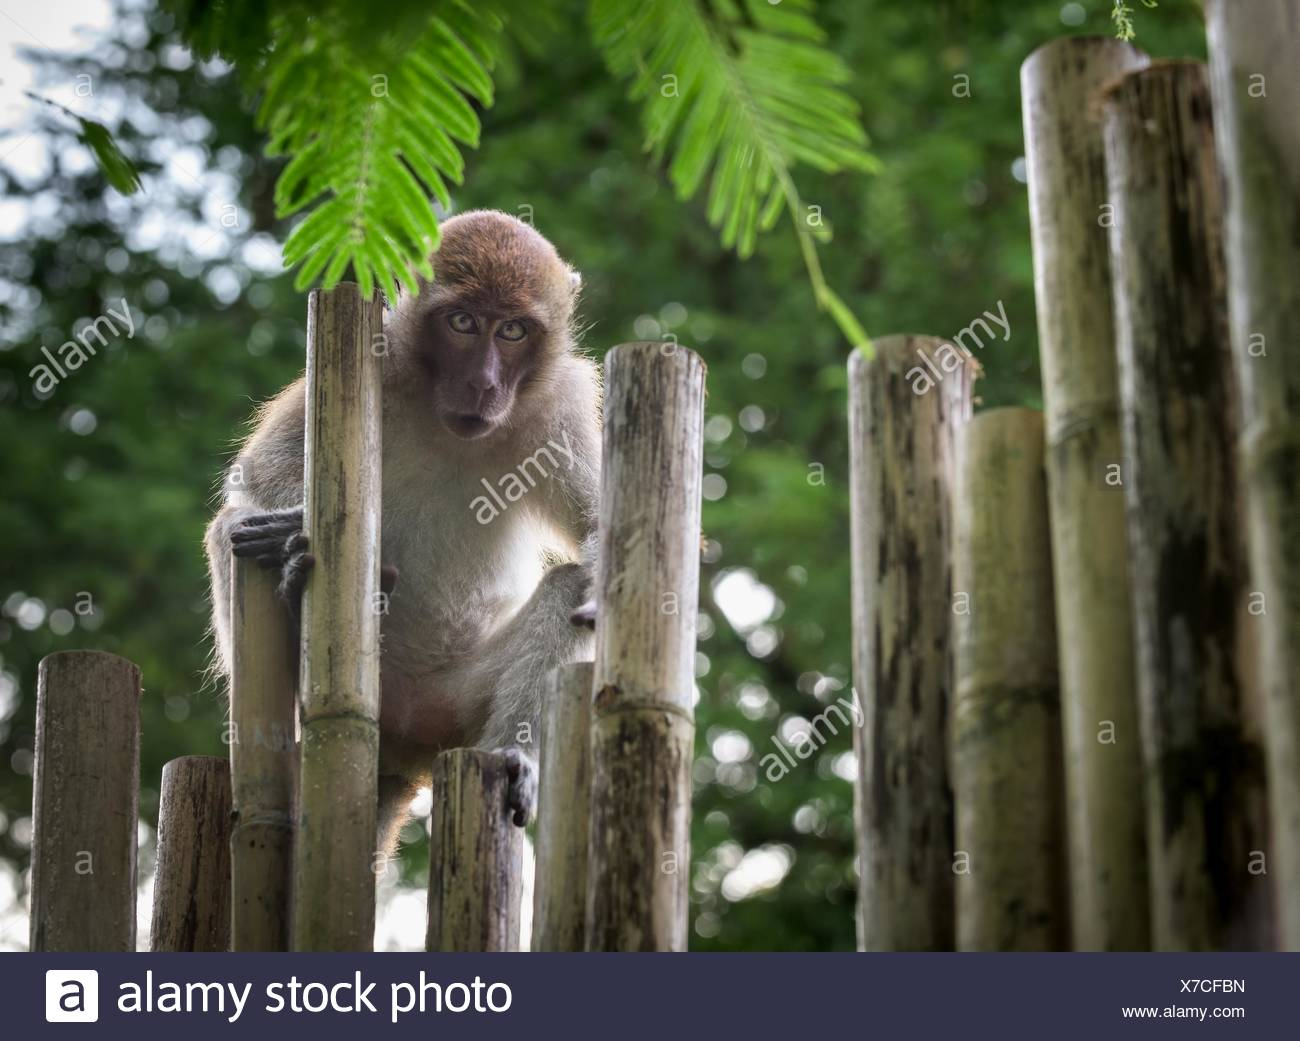 Portrait Of Monkey On Wooden Posts In Forest - Stock Image